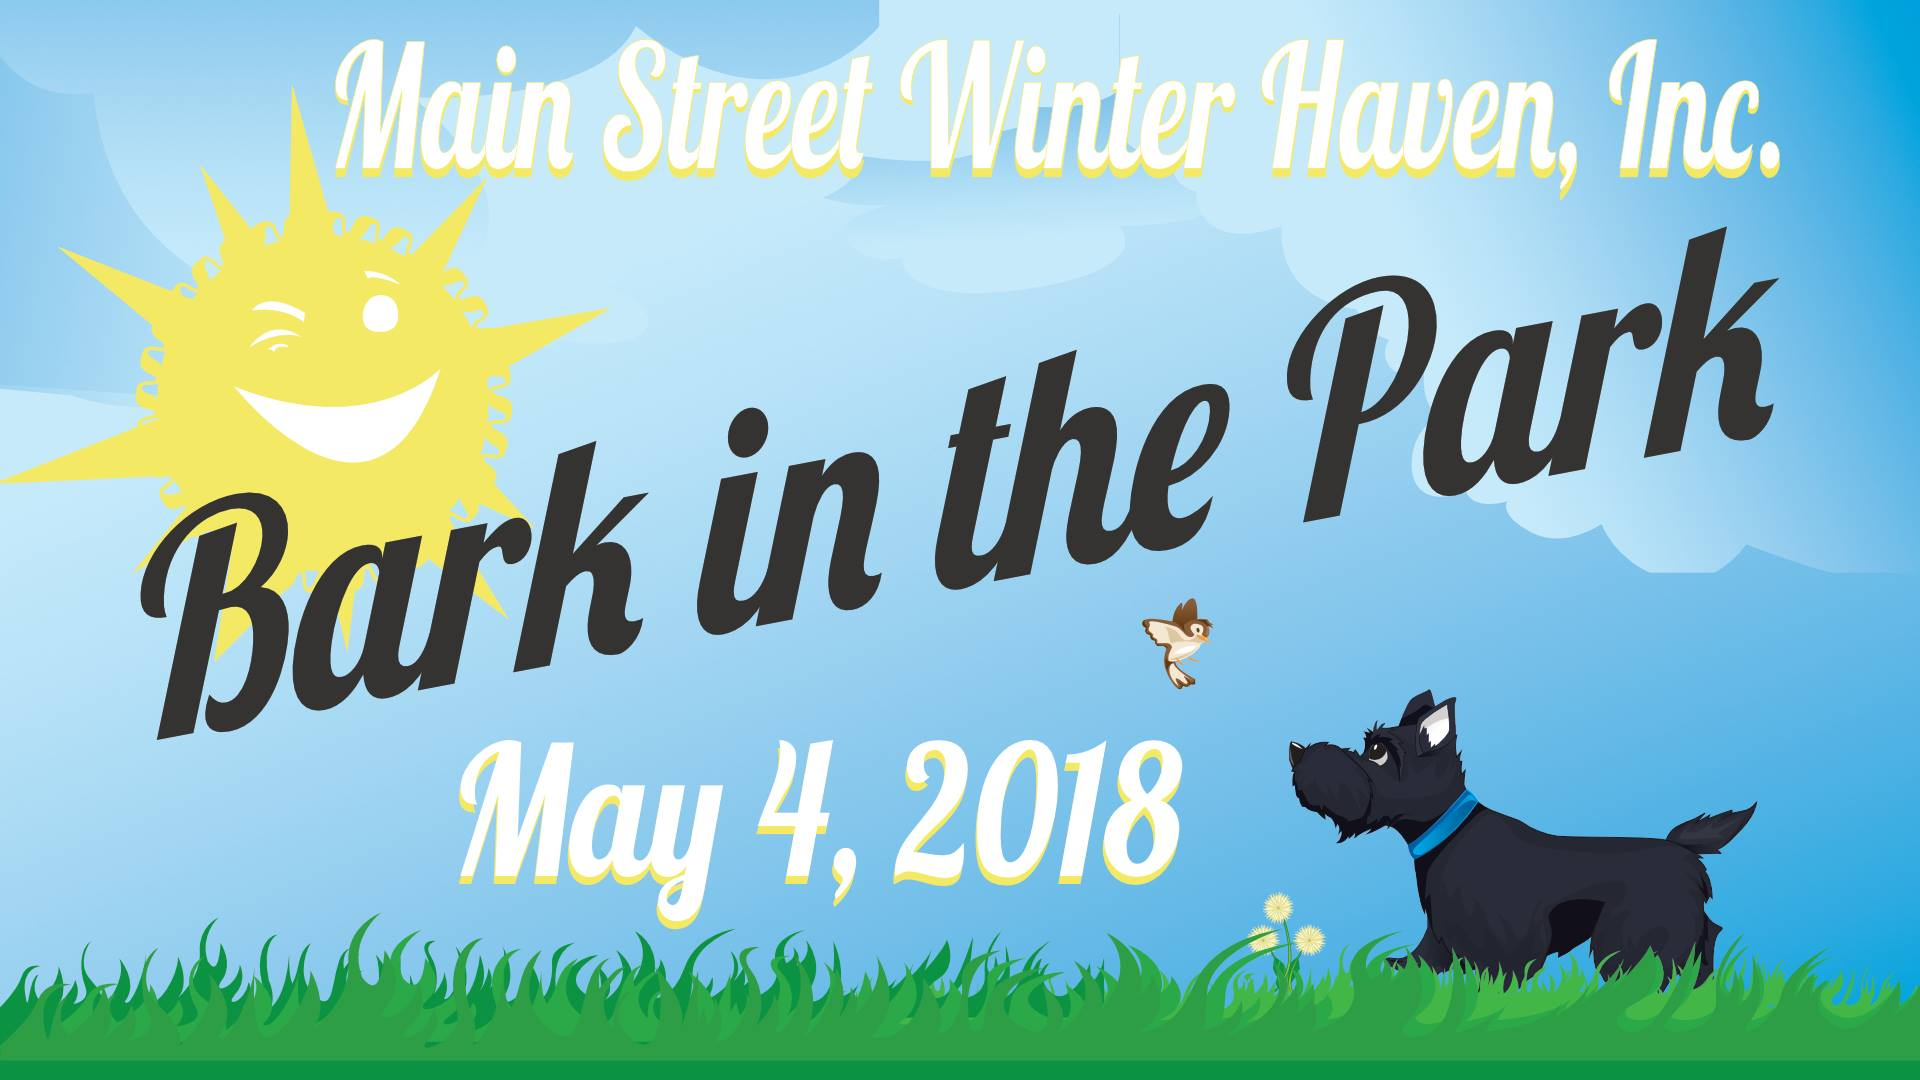 Bark in the Park Winter Haven